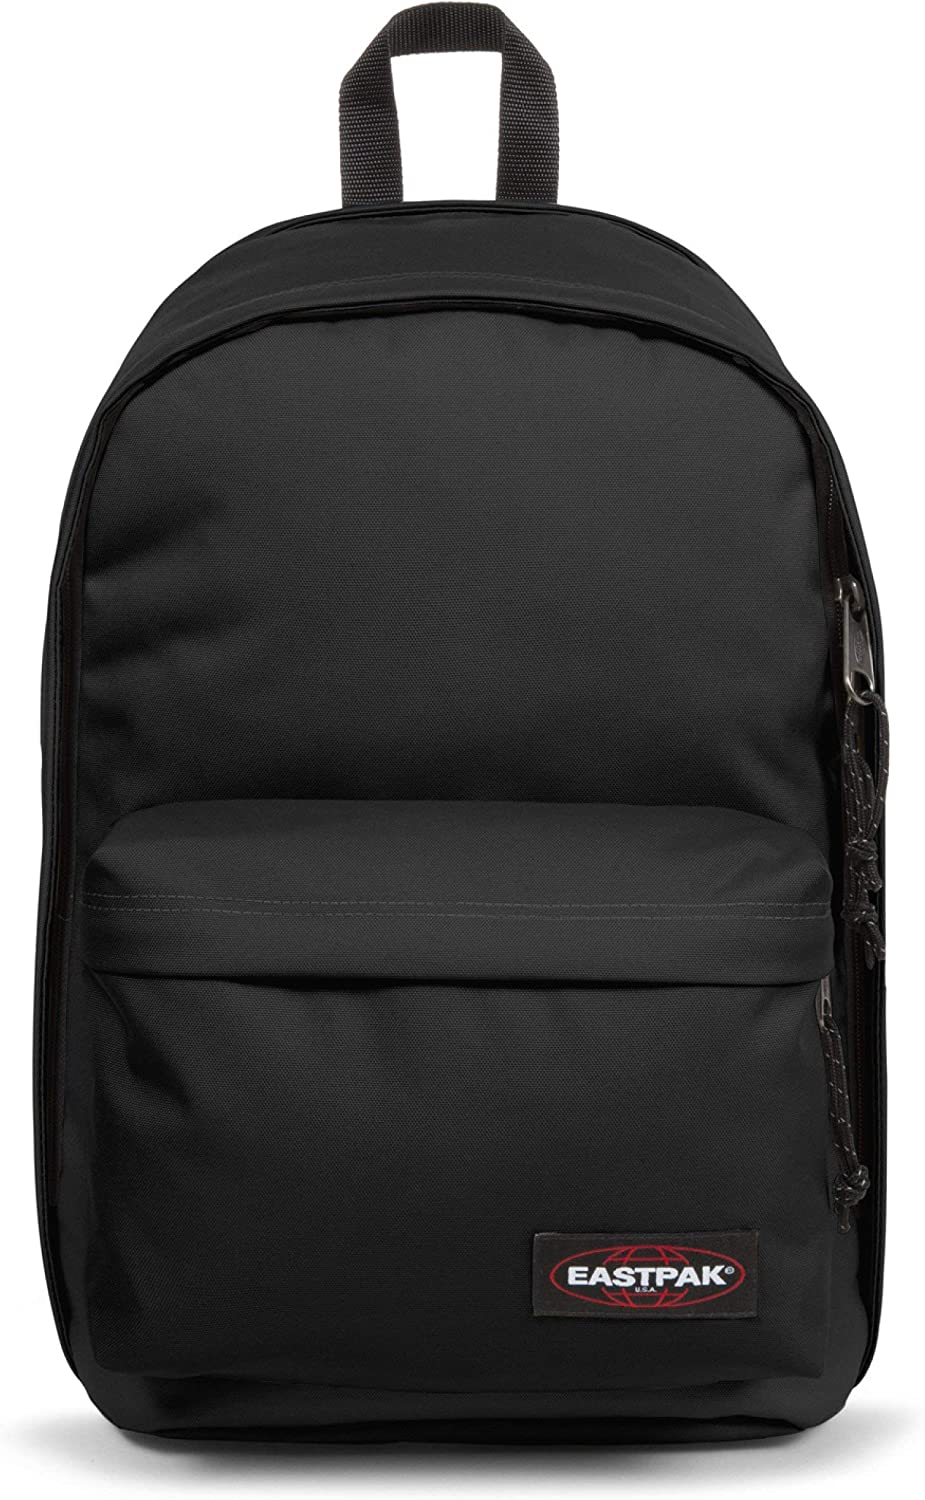 Eastpak Women's Back to Work Backpack, Black, One Size